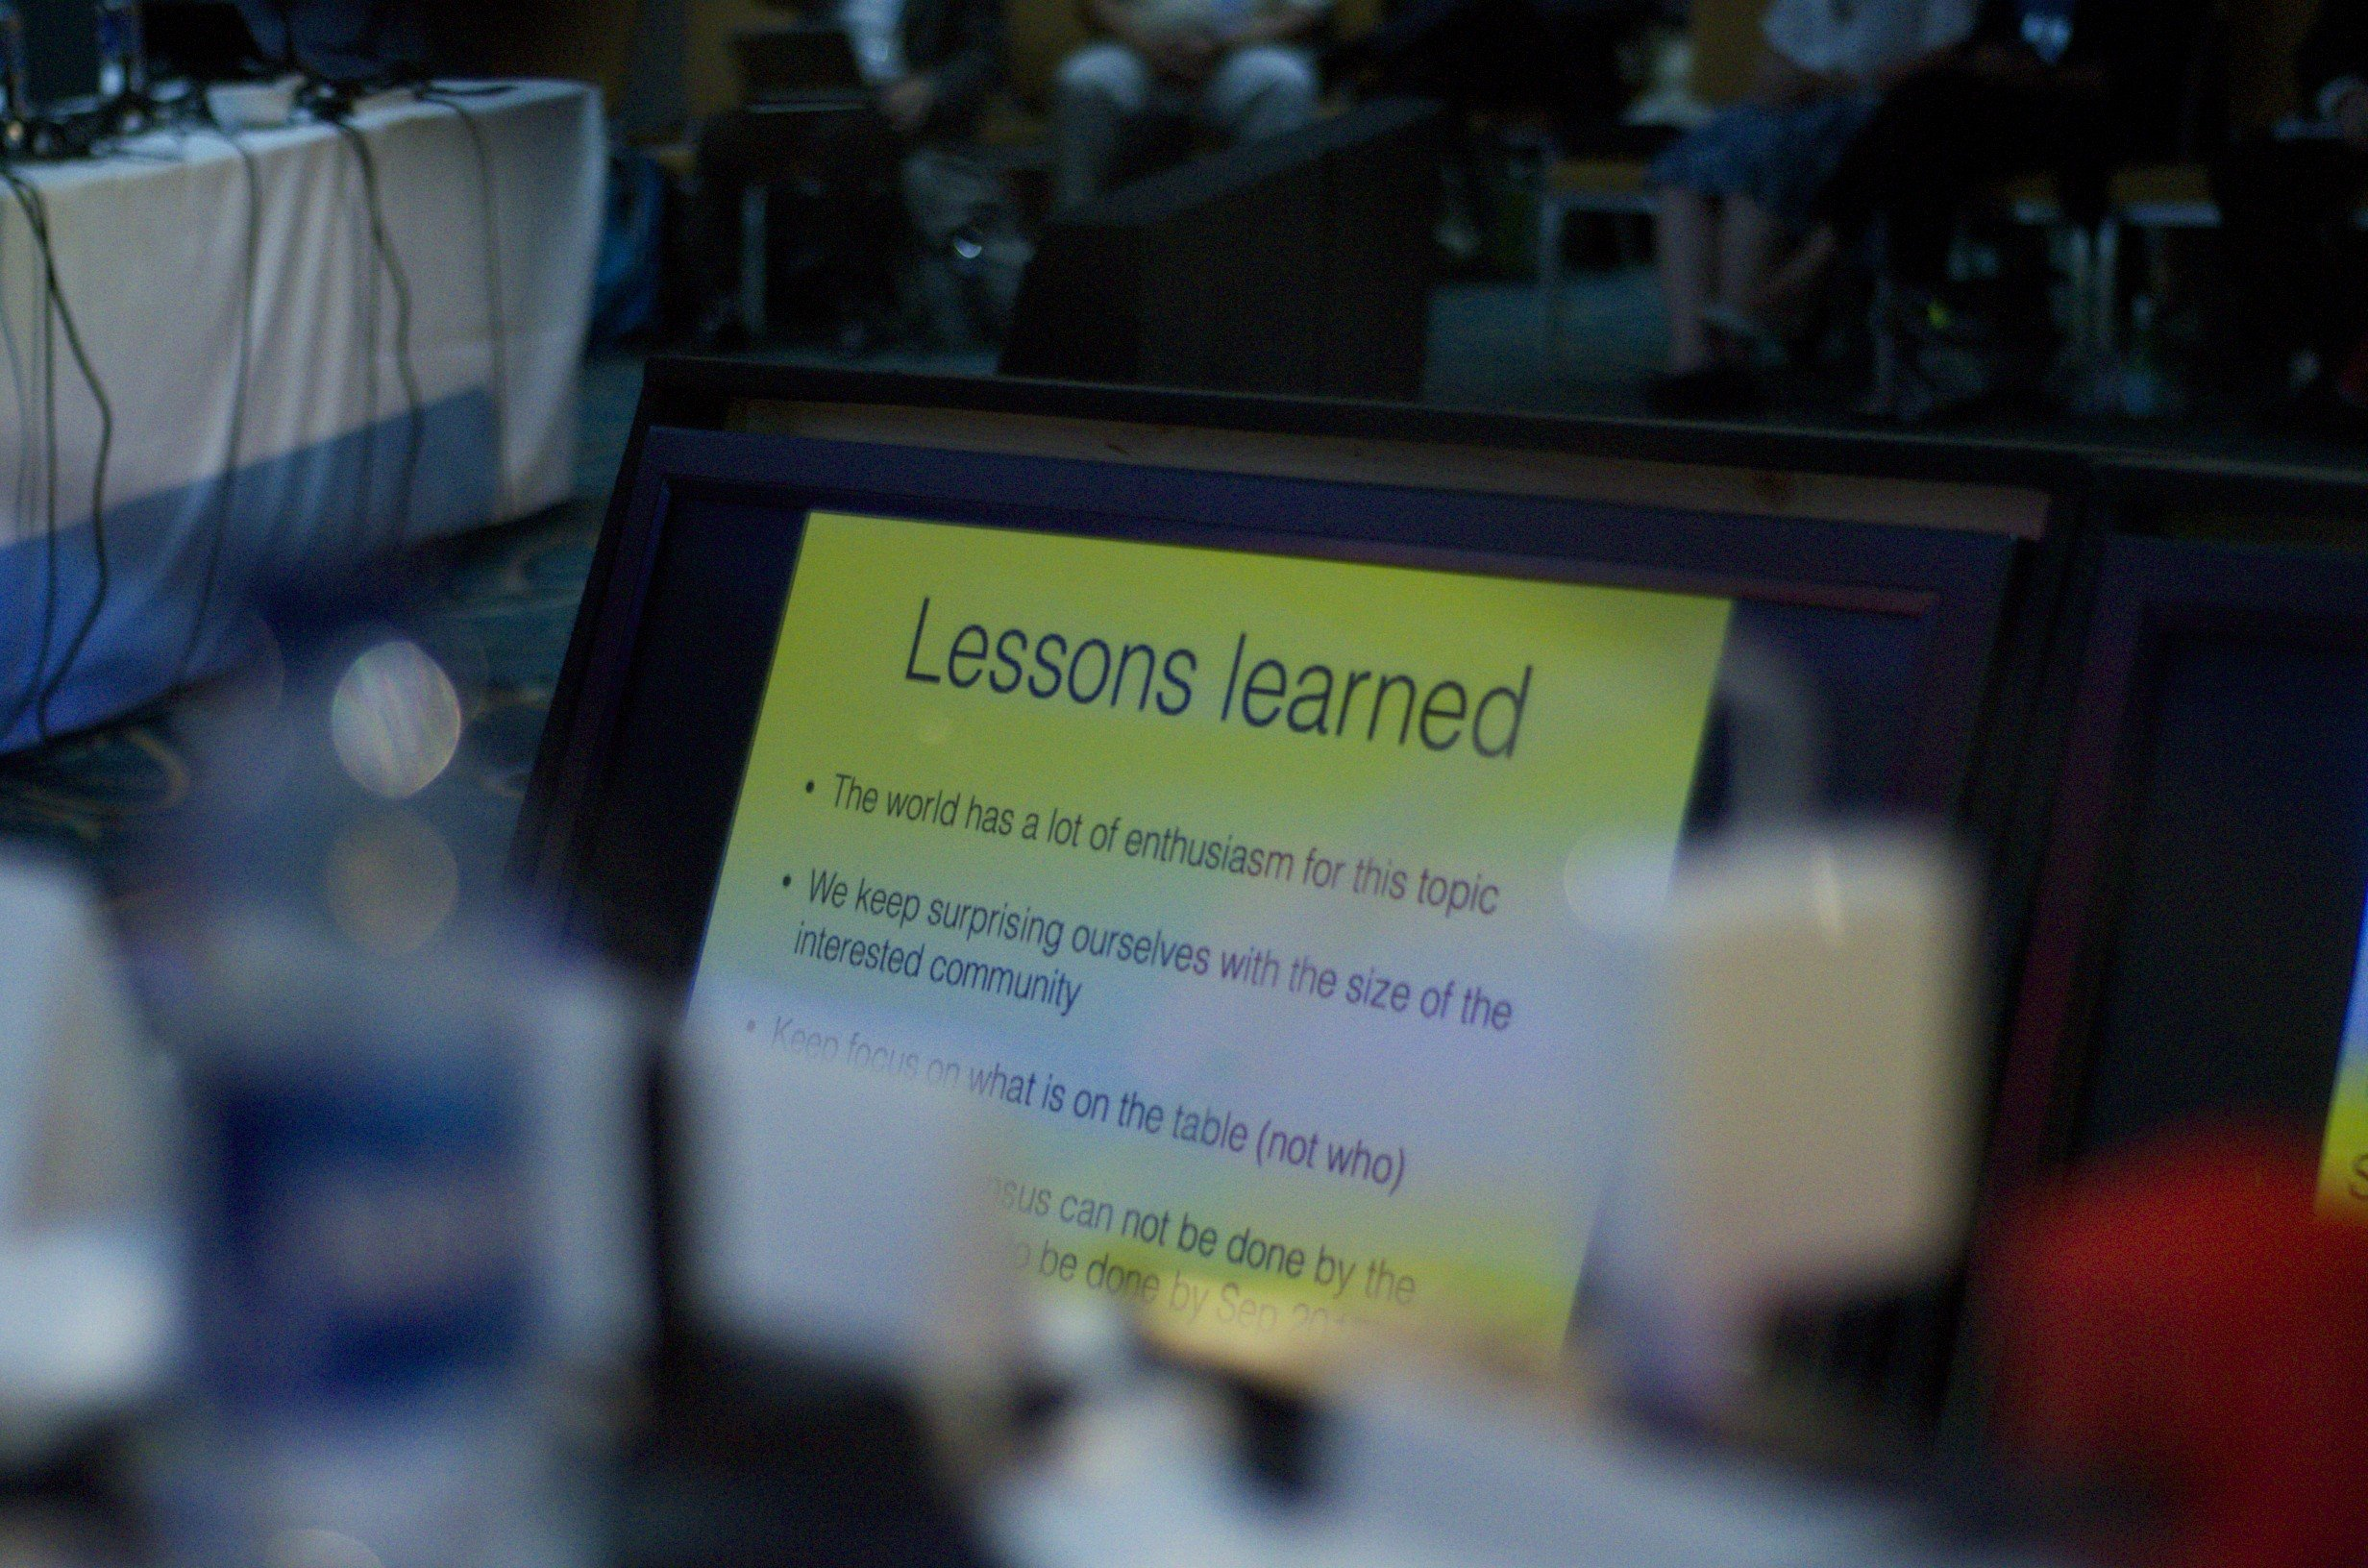 Lessons learned about IANA as shown at ICANN50.